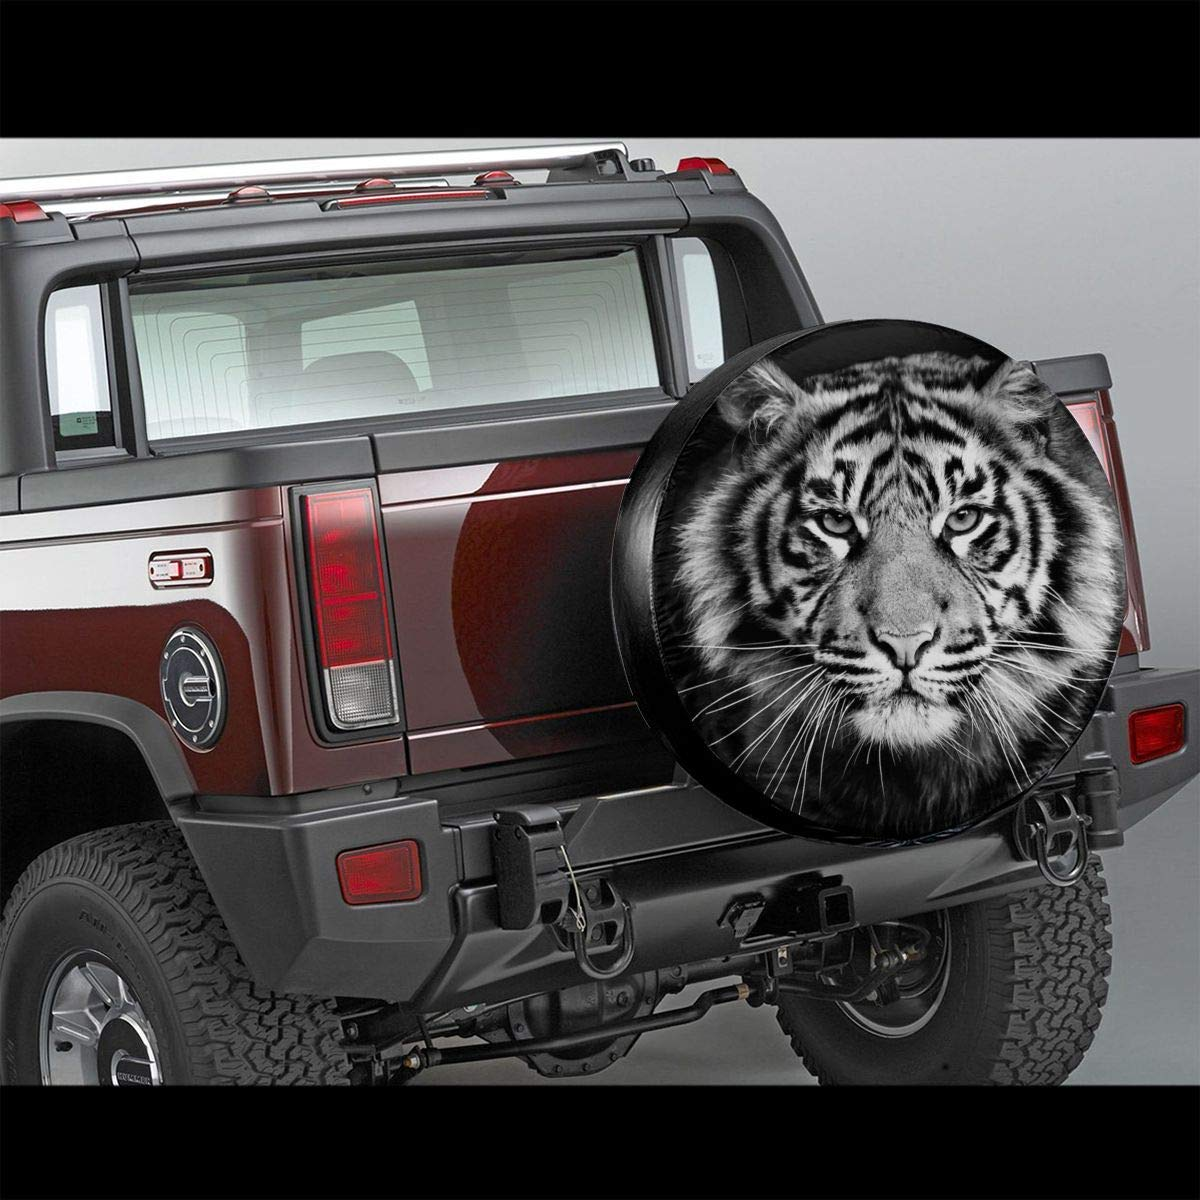 Desing shop Tire Cover White Tiger Potable Polyester Universal Spare Wheel Tire Cover Wheel Covers Jeep Trailer RV SUV Truck Camper Travel Trailer Accessories 15 in